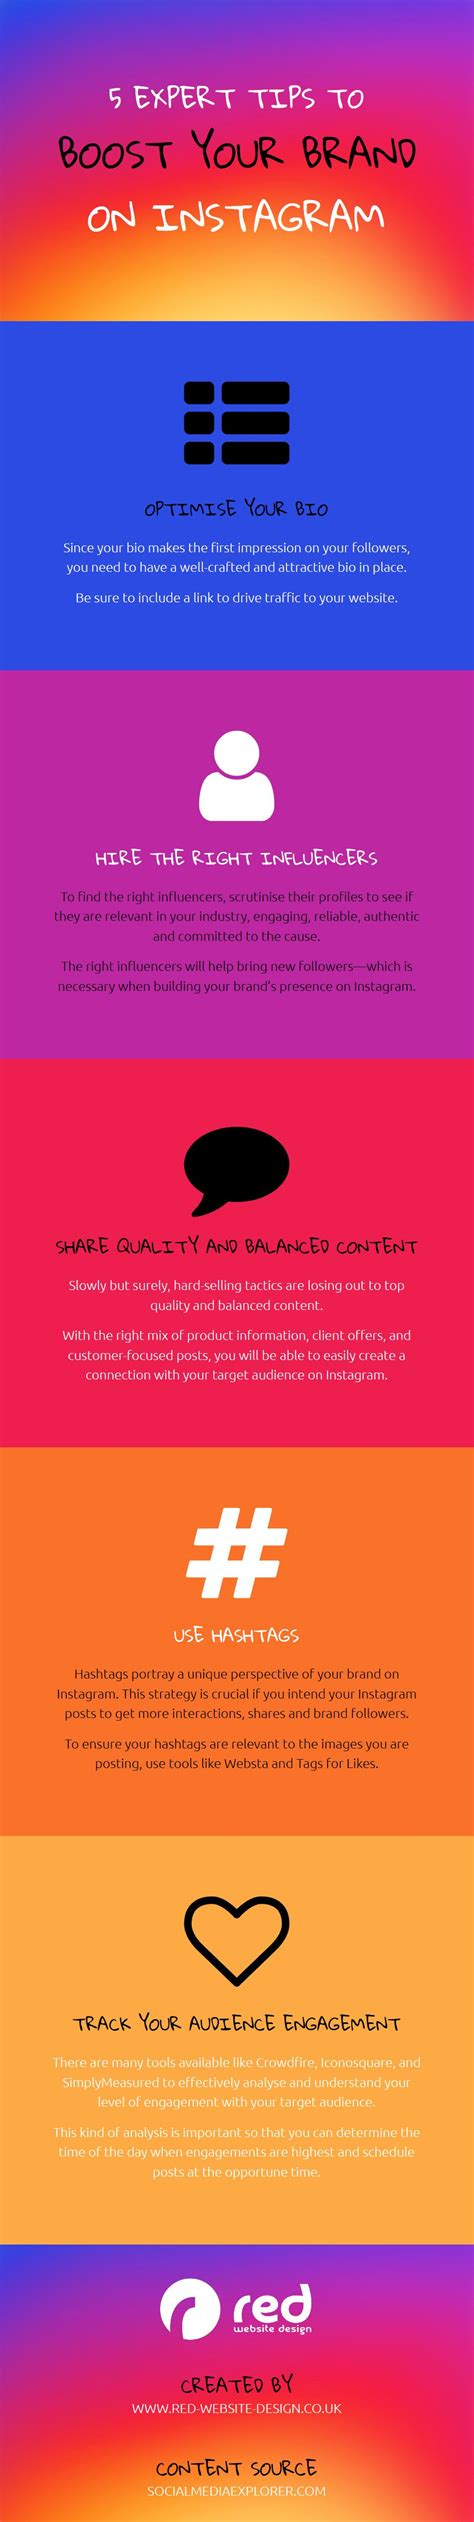 graphic design instagram bio 5 to boost your brand on instagram infographic